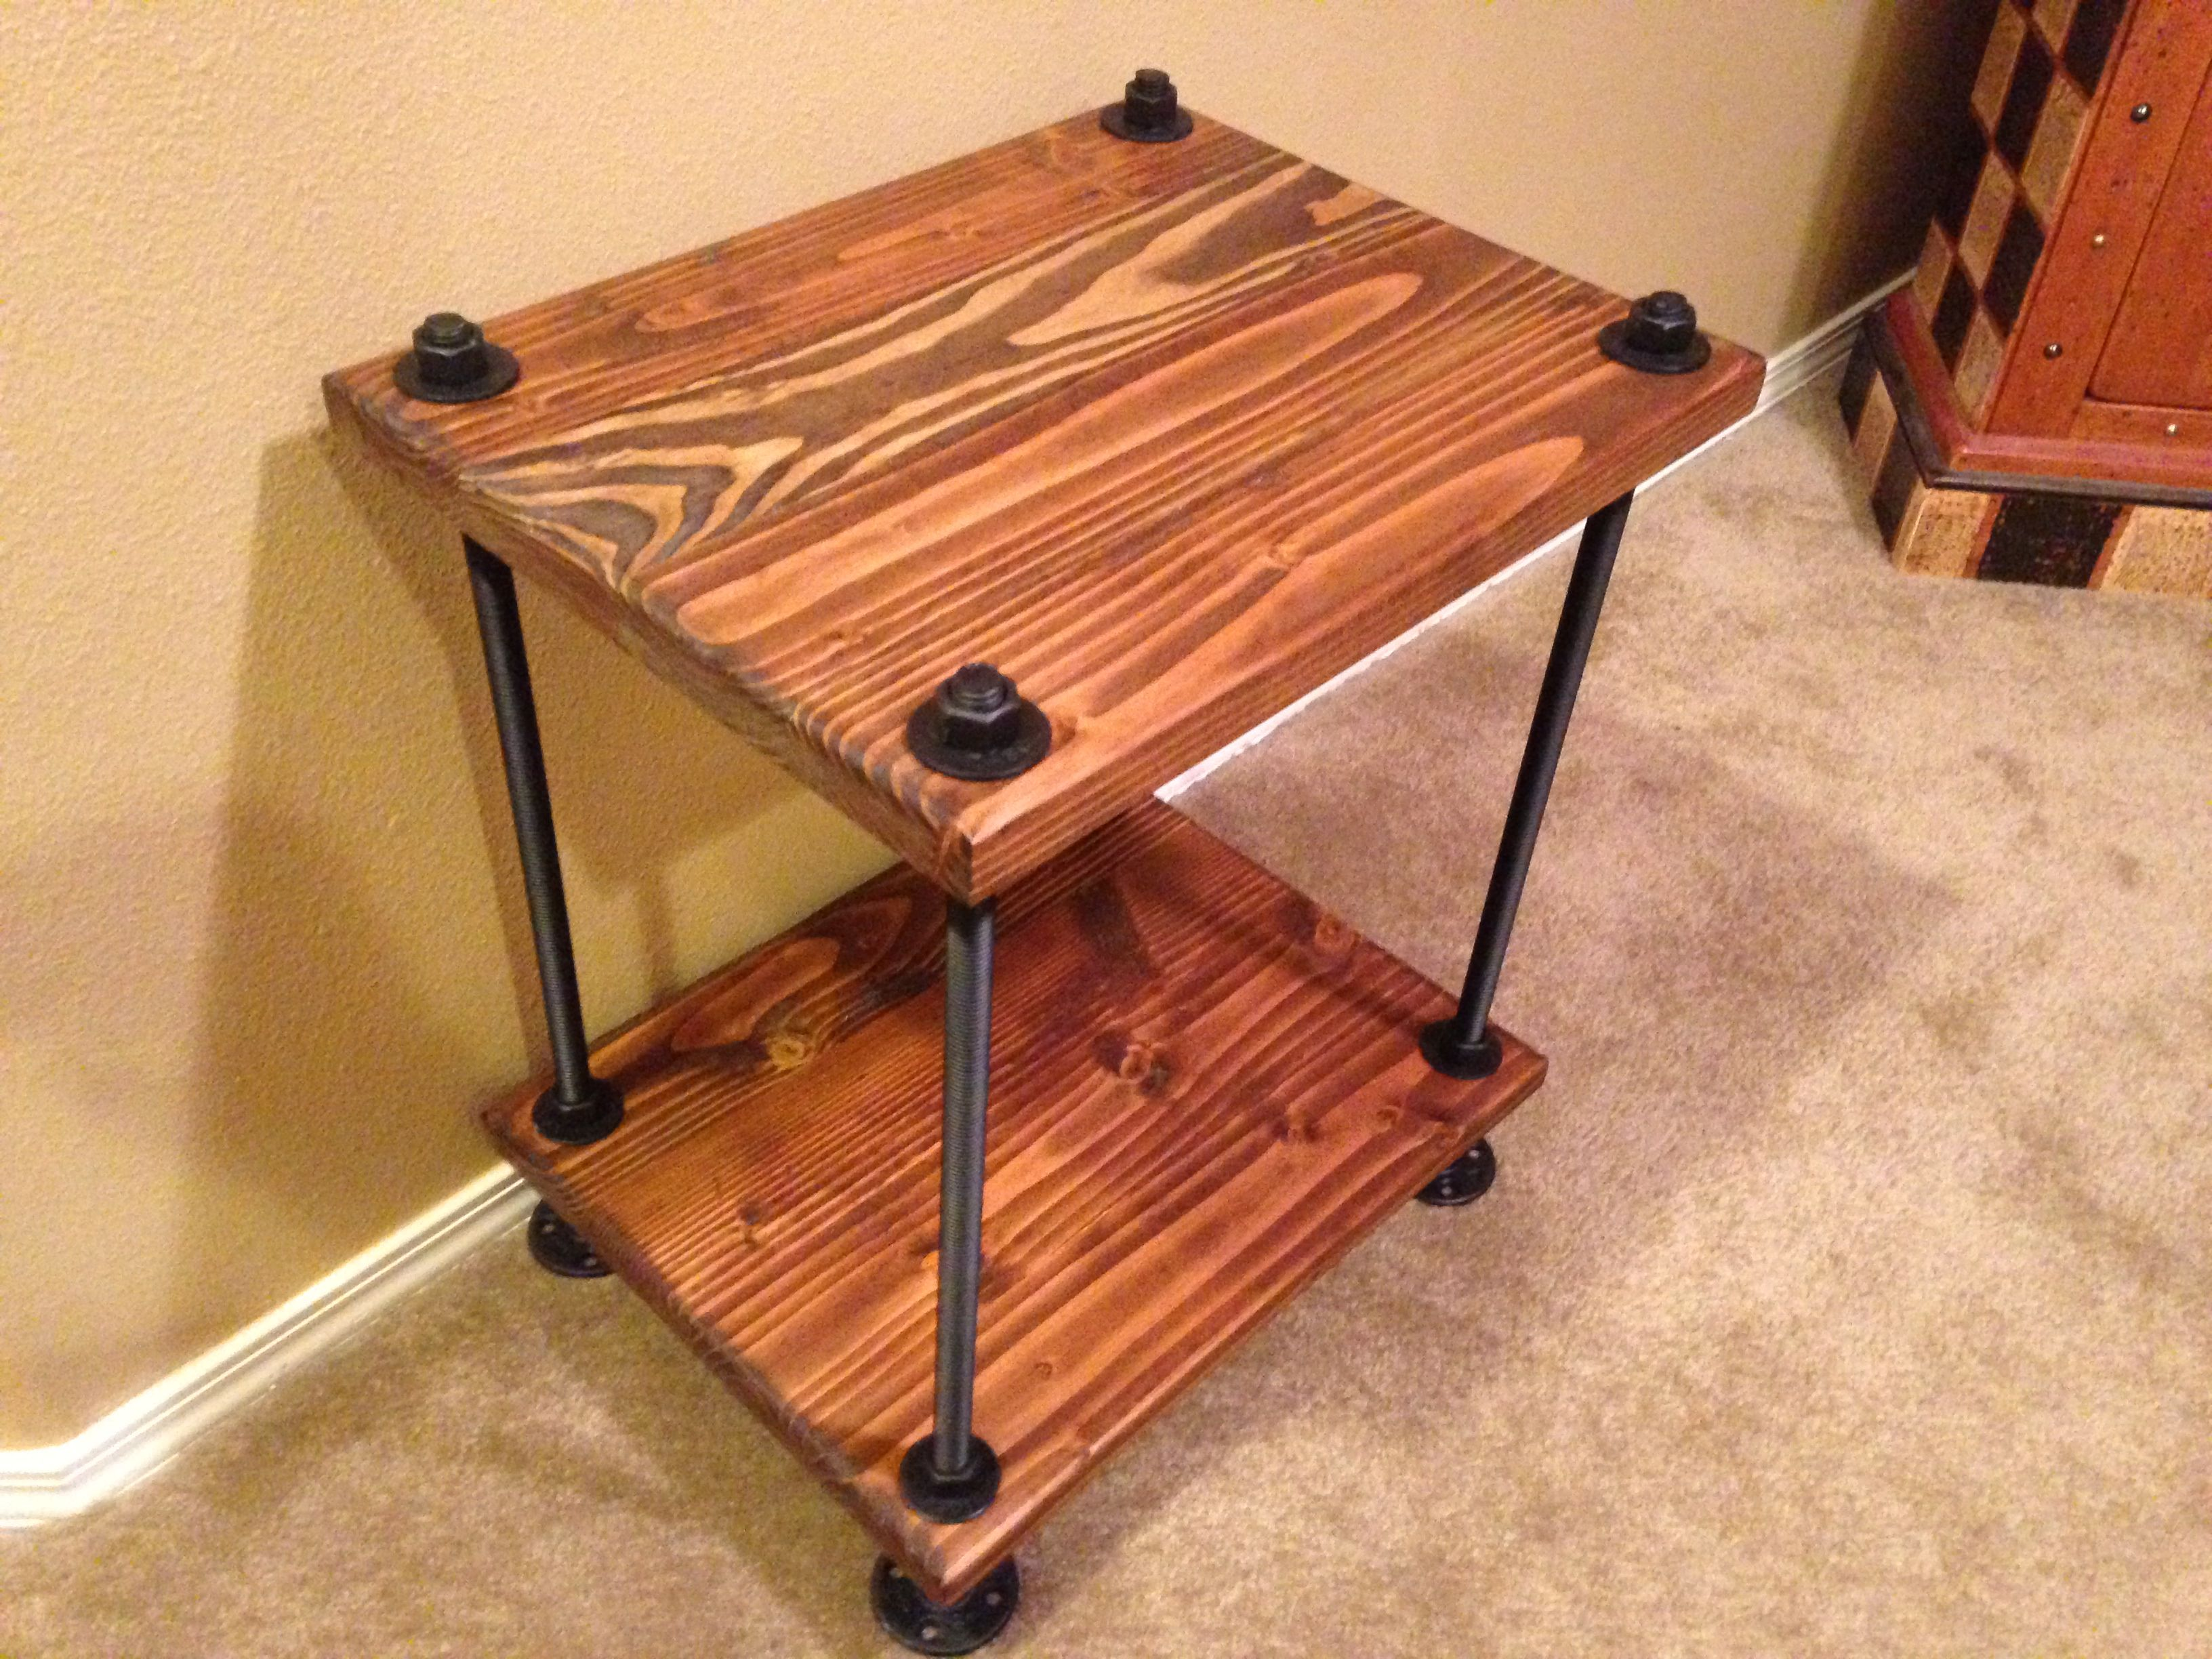 Amazing Reclaimed Wood Industrial Style End Table With Threaded Rod Frame. Under  The Table Woodworks